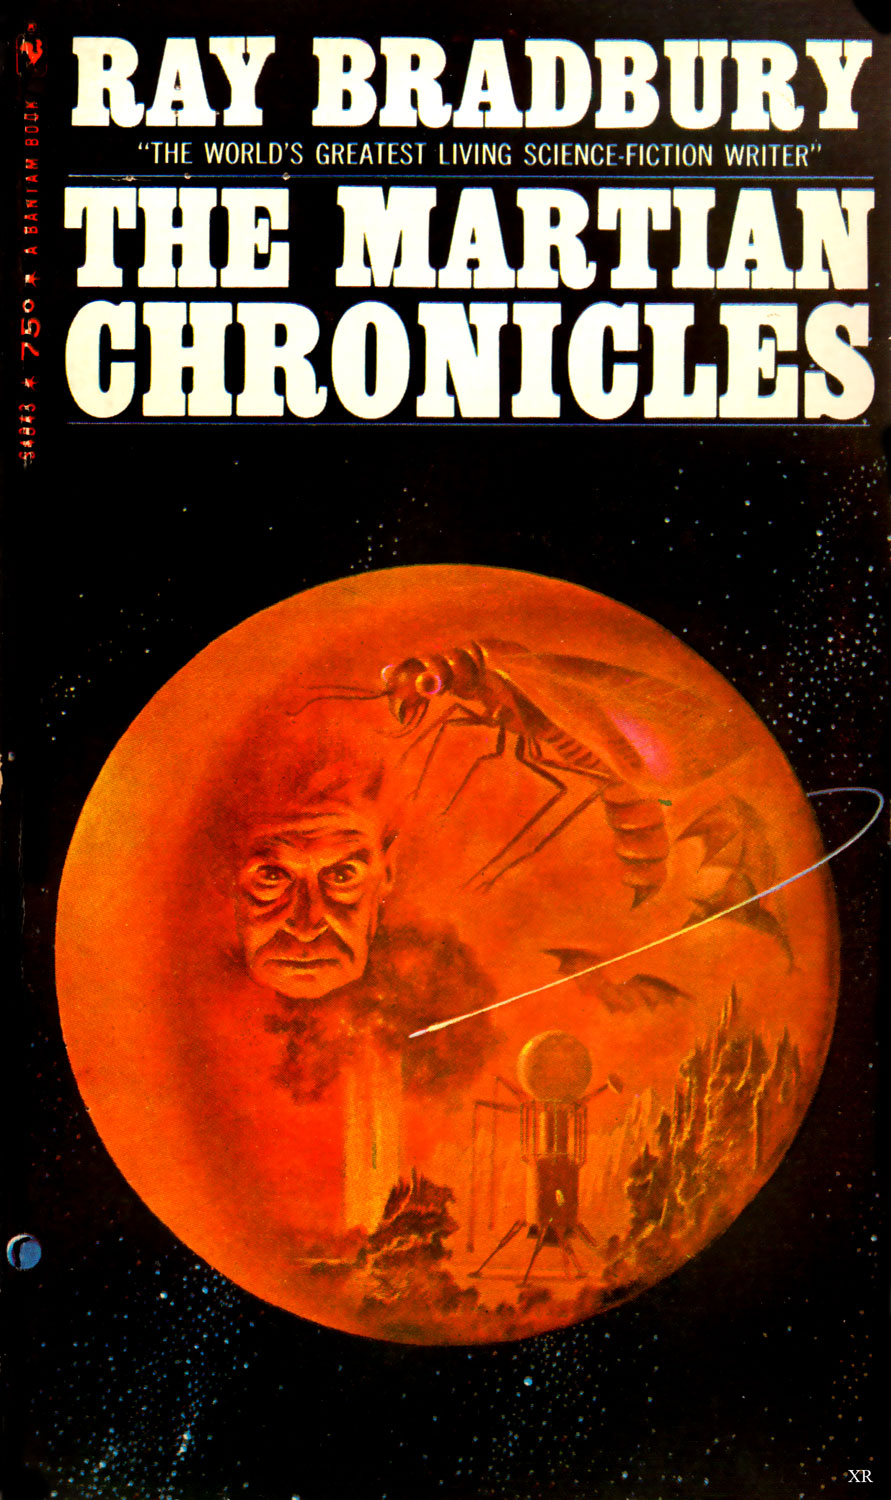 martian chronicles essays The martian chronicles: a look into colonization on mars ray bradbury's the martian chronicles, a science fiction novel explores the lives of the people.